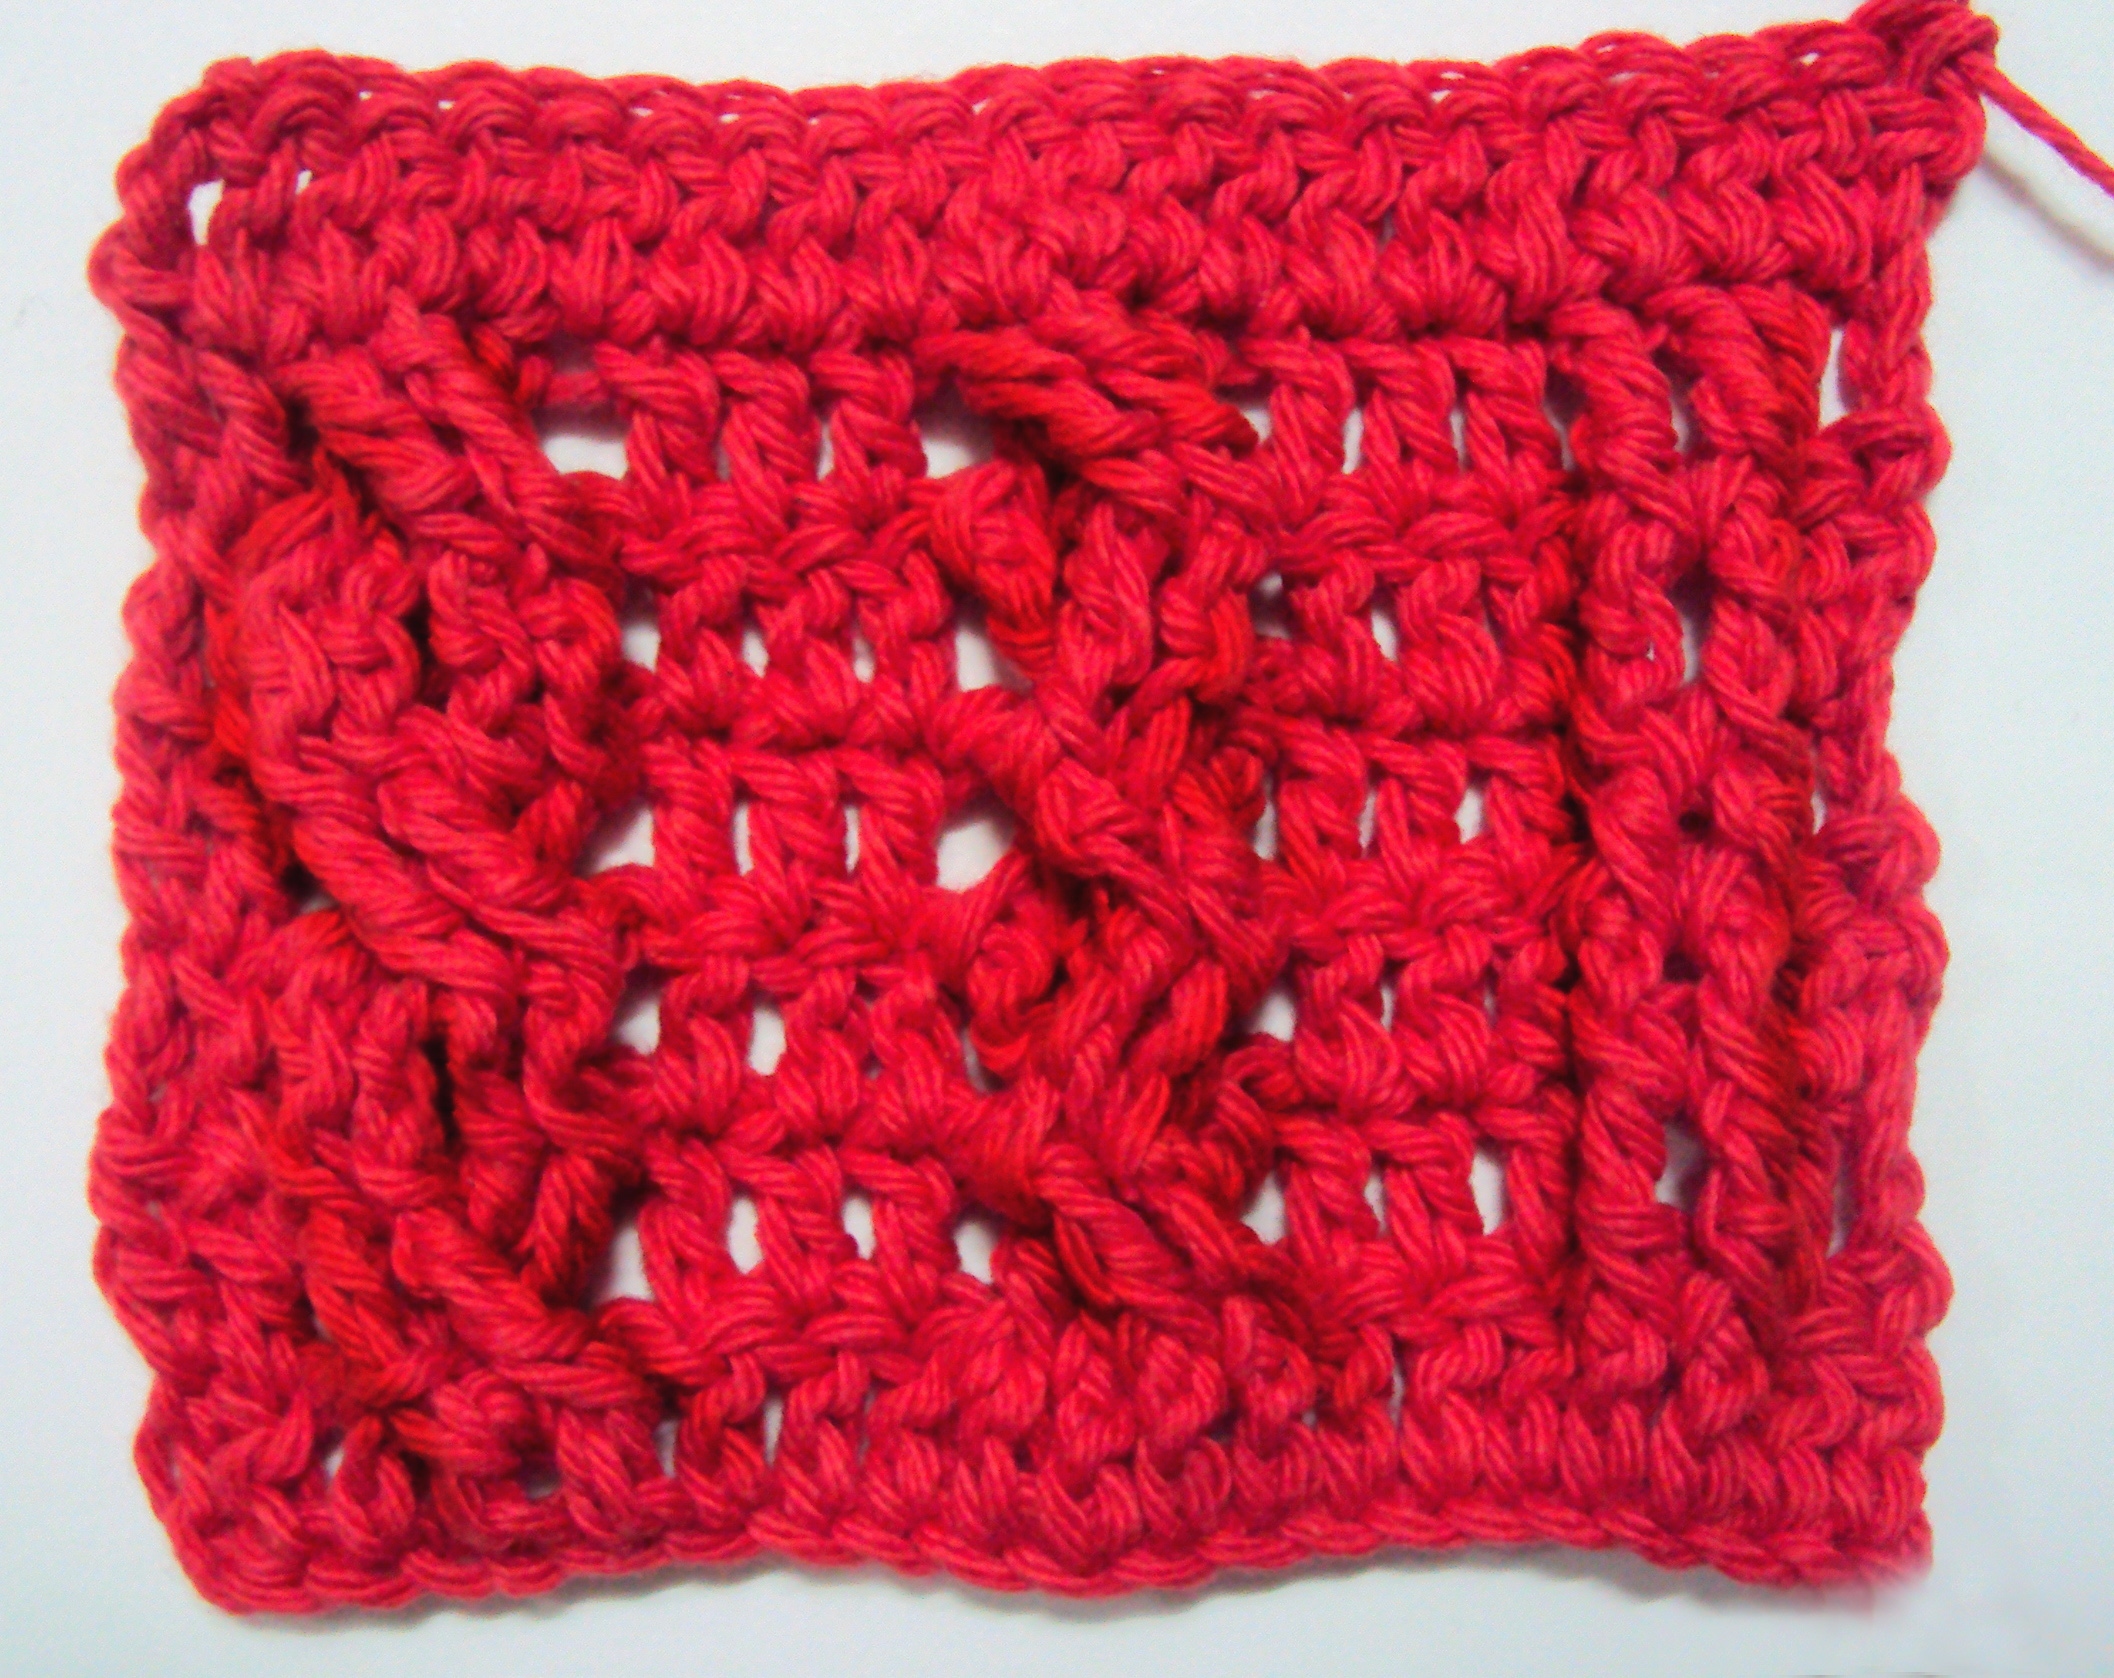 Crochet Stitches Patterns